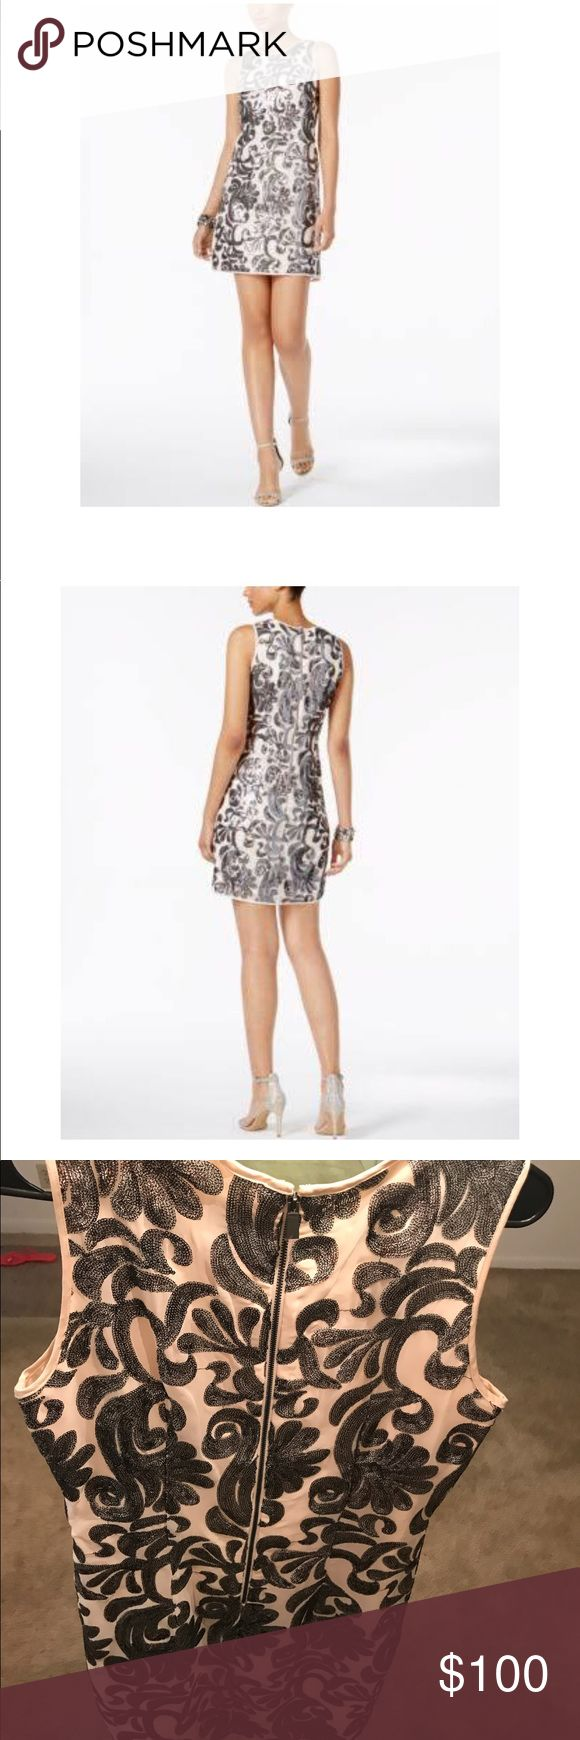 Vince Camuto Sequined Embroidered Dress $148.00 · Macy's +$10.36 tax.  Product details Brand:Vince Camuto Size type:Regular Department:Women's Flourishes of fancy sequins make Vince Camuto's mini dress a stunning style for parties and special events. Vince Camuto Dresses Mini